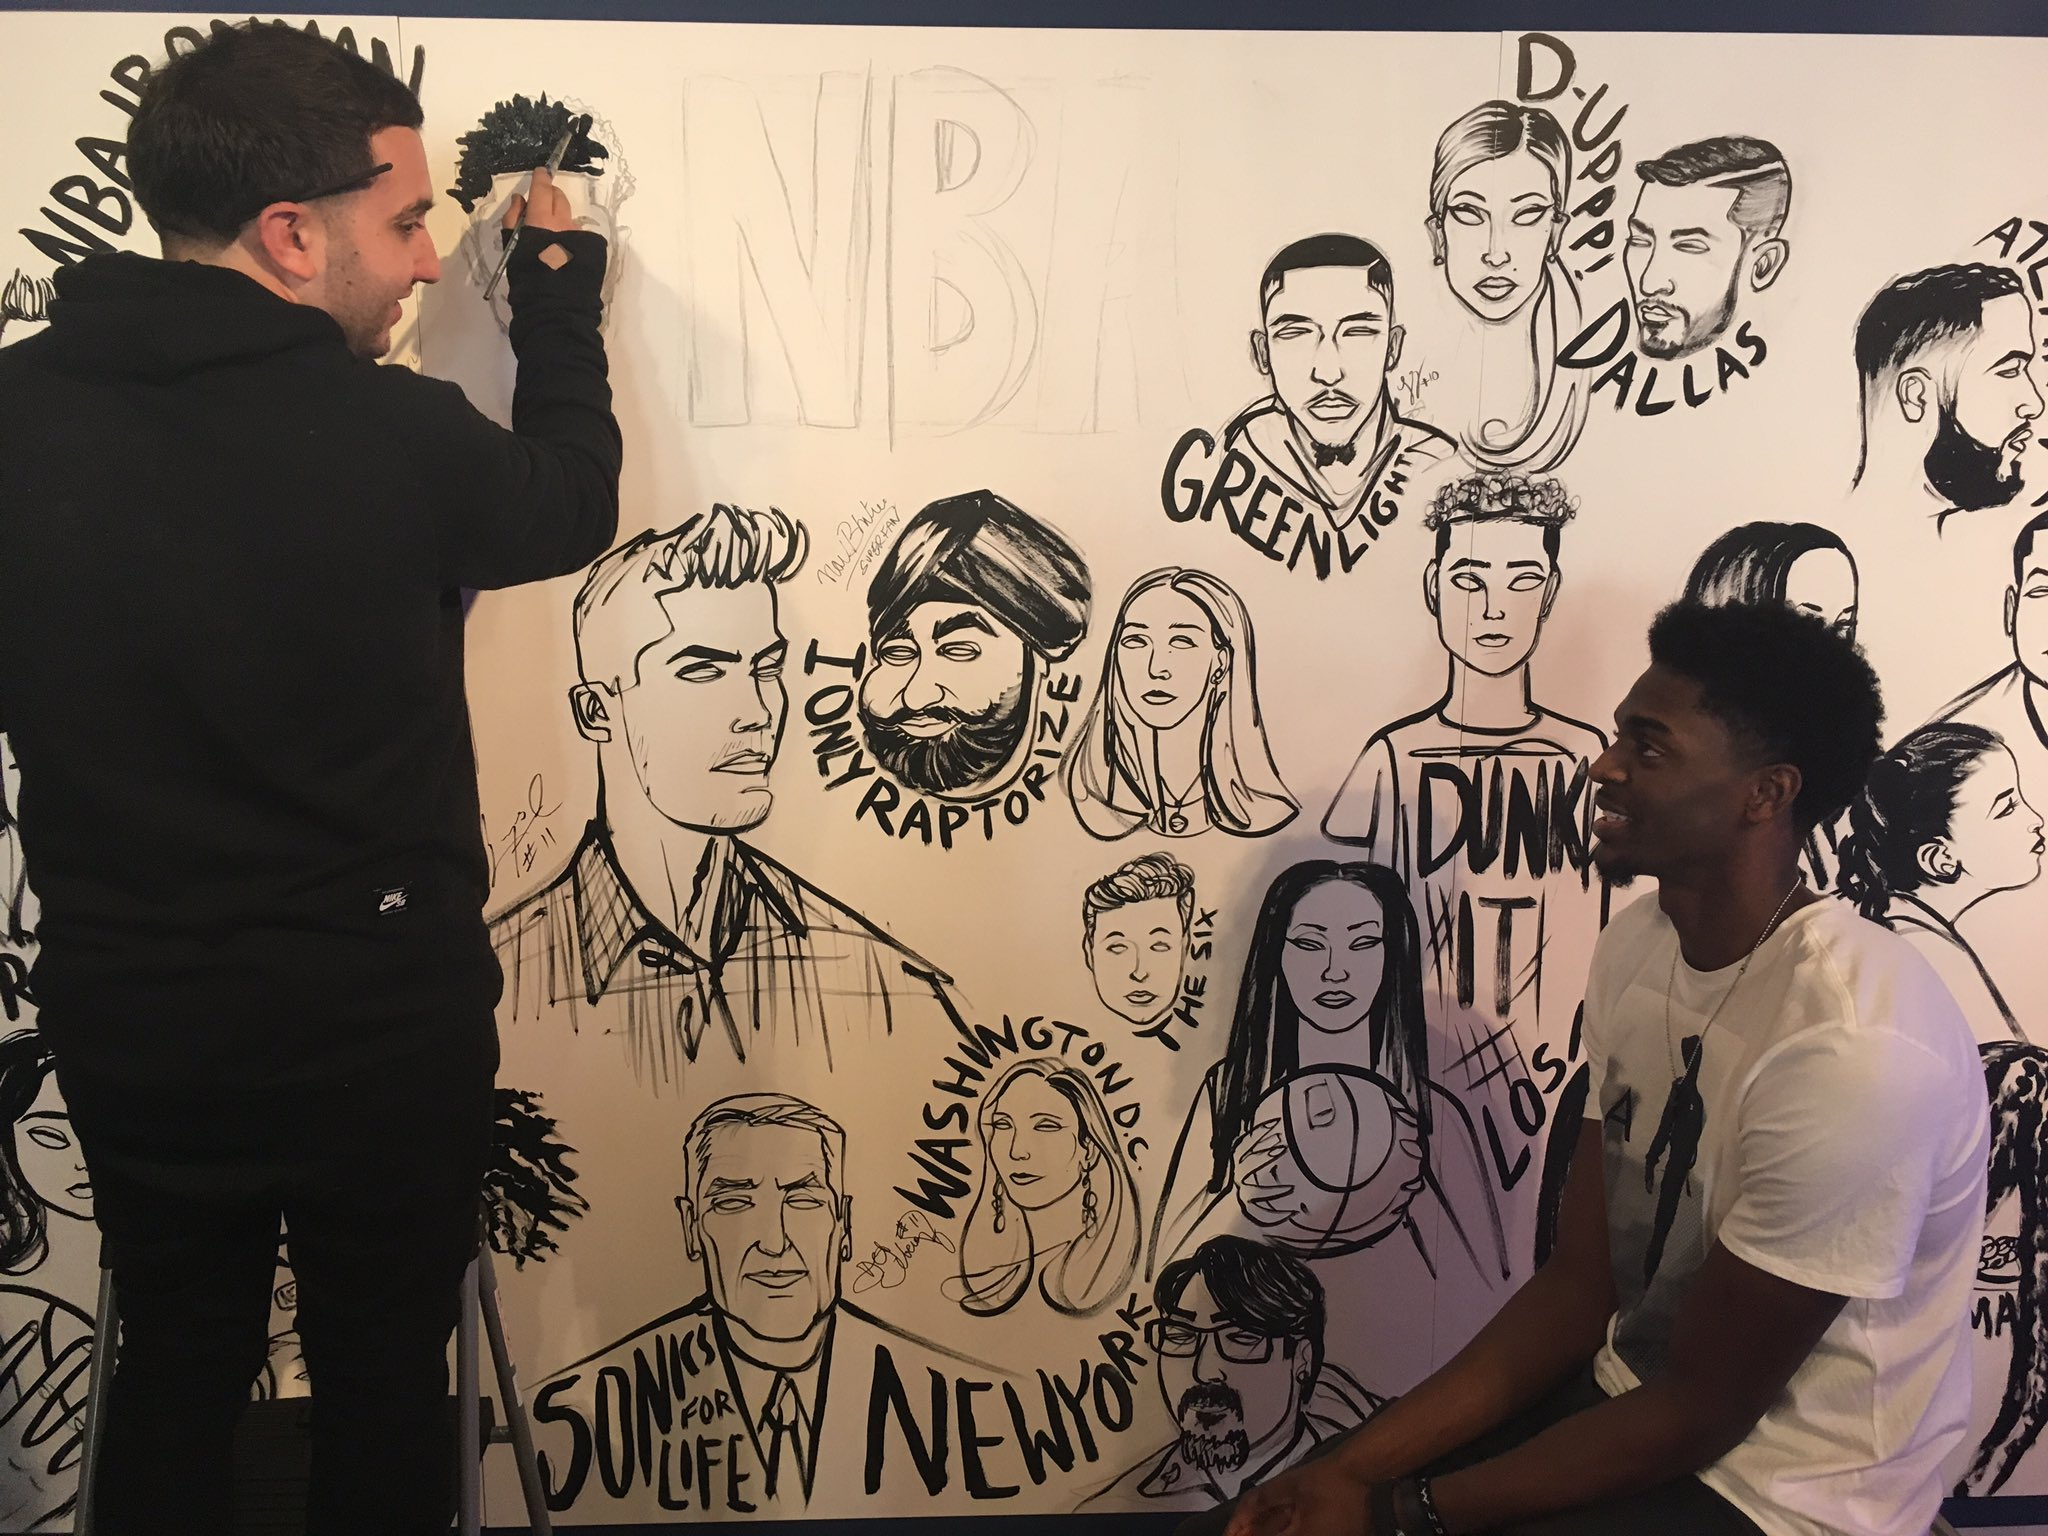 .@JustHolla7 is at #NBACrossover becoming a part of the sketch wall! Come check it out until 6pm today! https://t.co/Pt3NK7ujf1